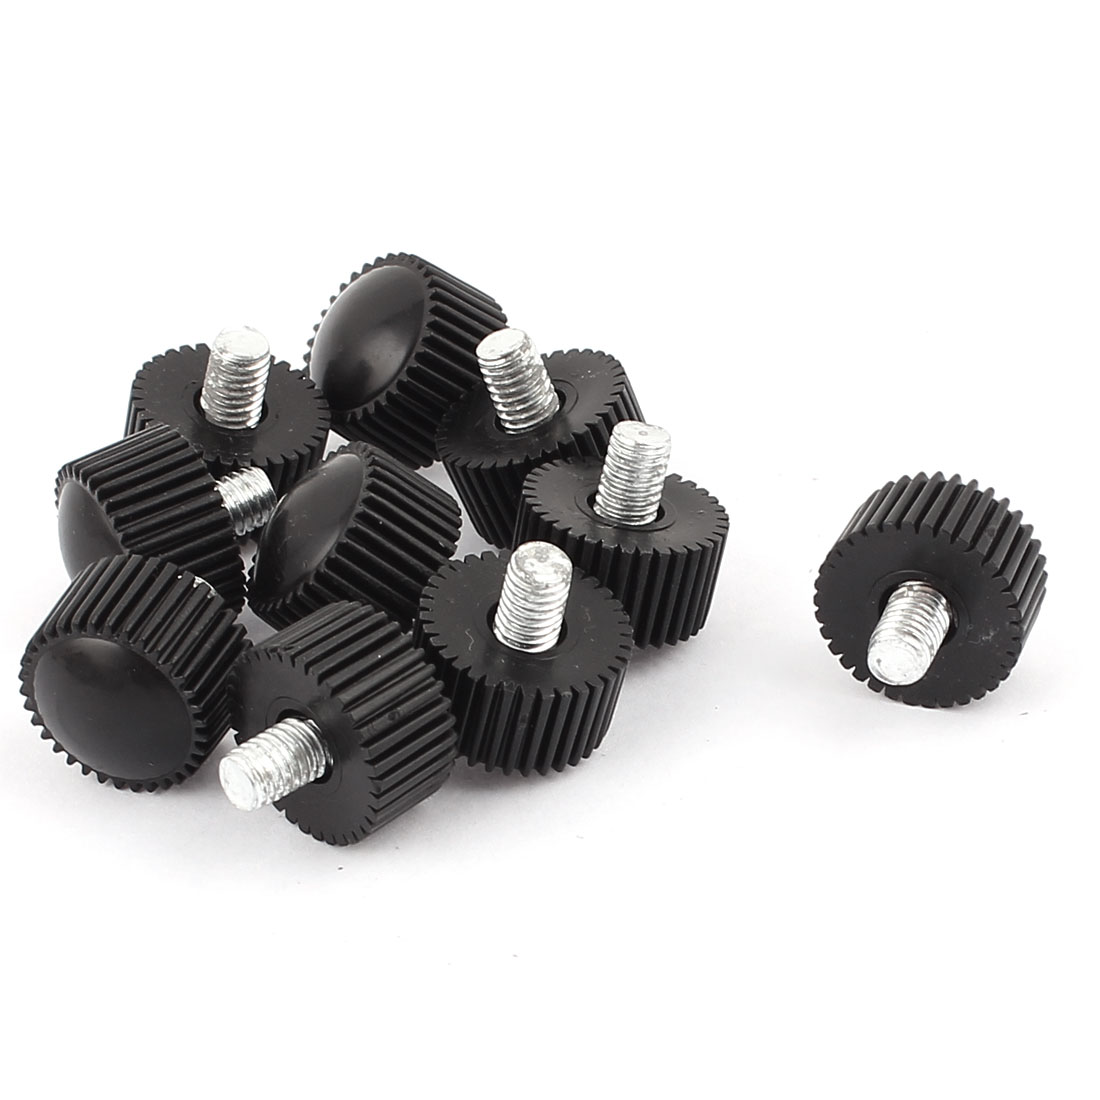 M5 x 6mm Round Head Screw On Straight Knurled Clamping Knob Grips Black 10pcs